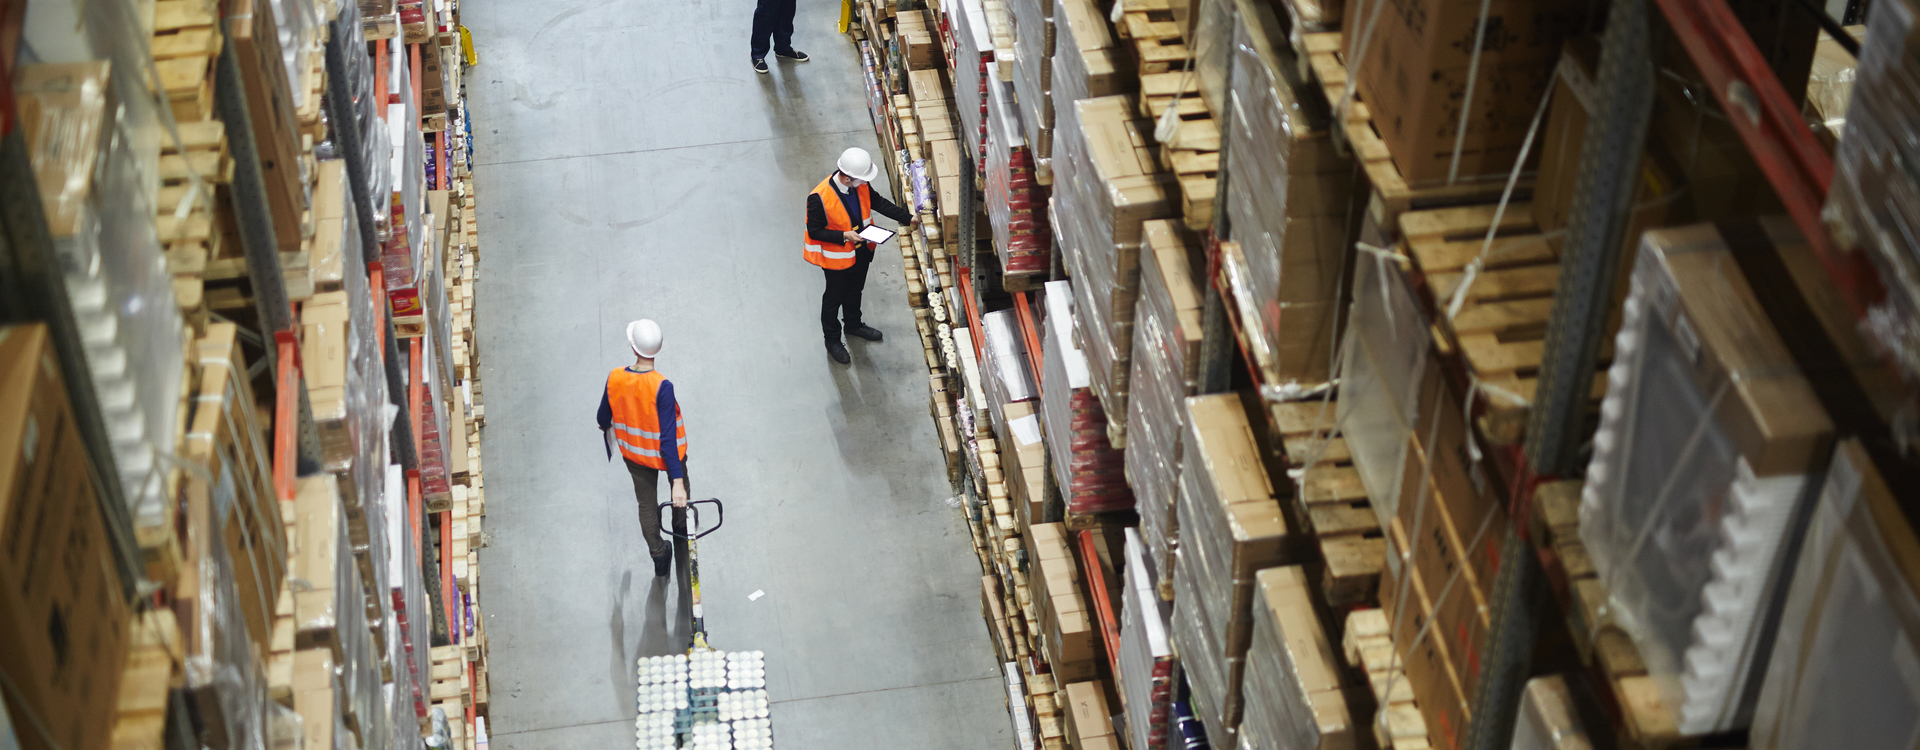 Warehousing & Distribution Business FOR SALE!